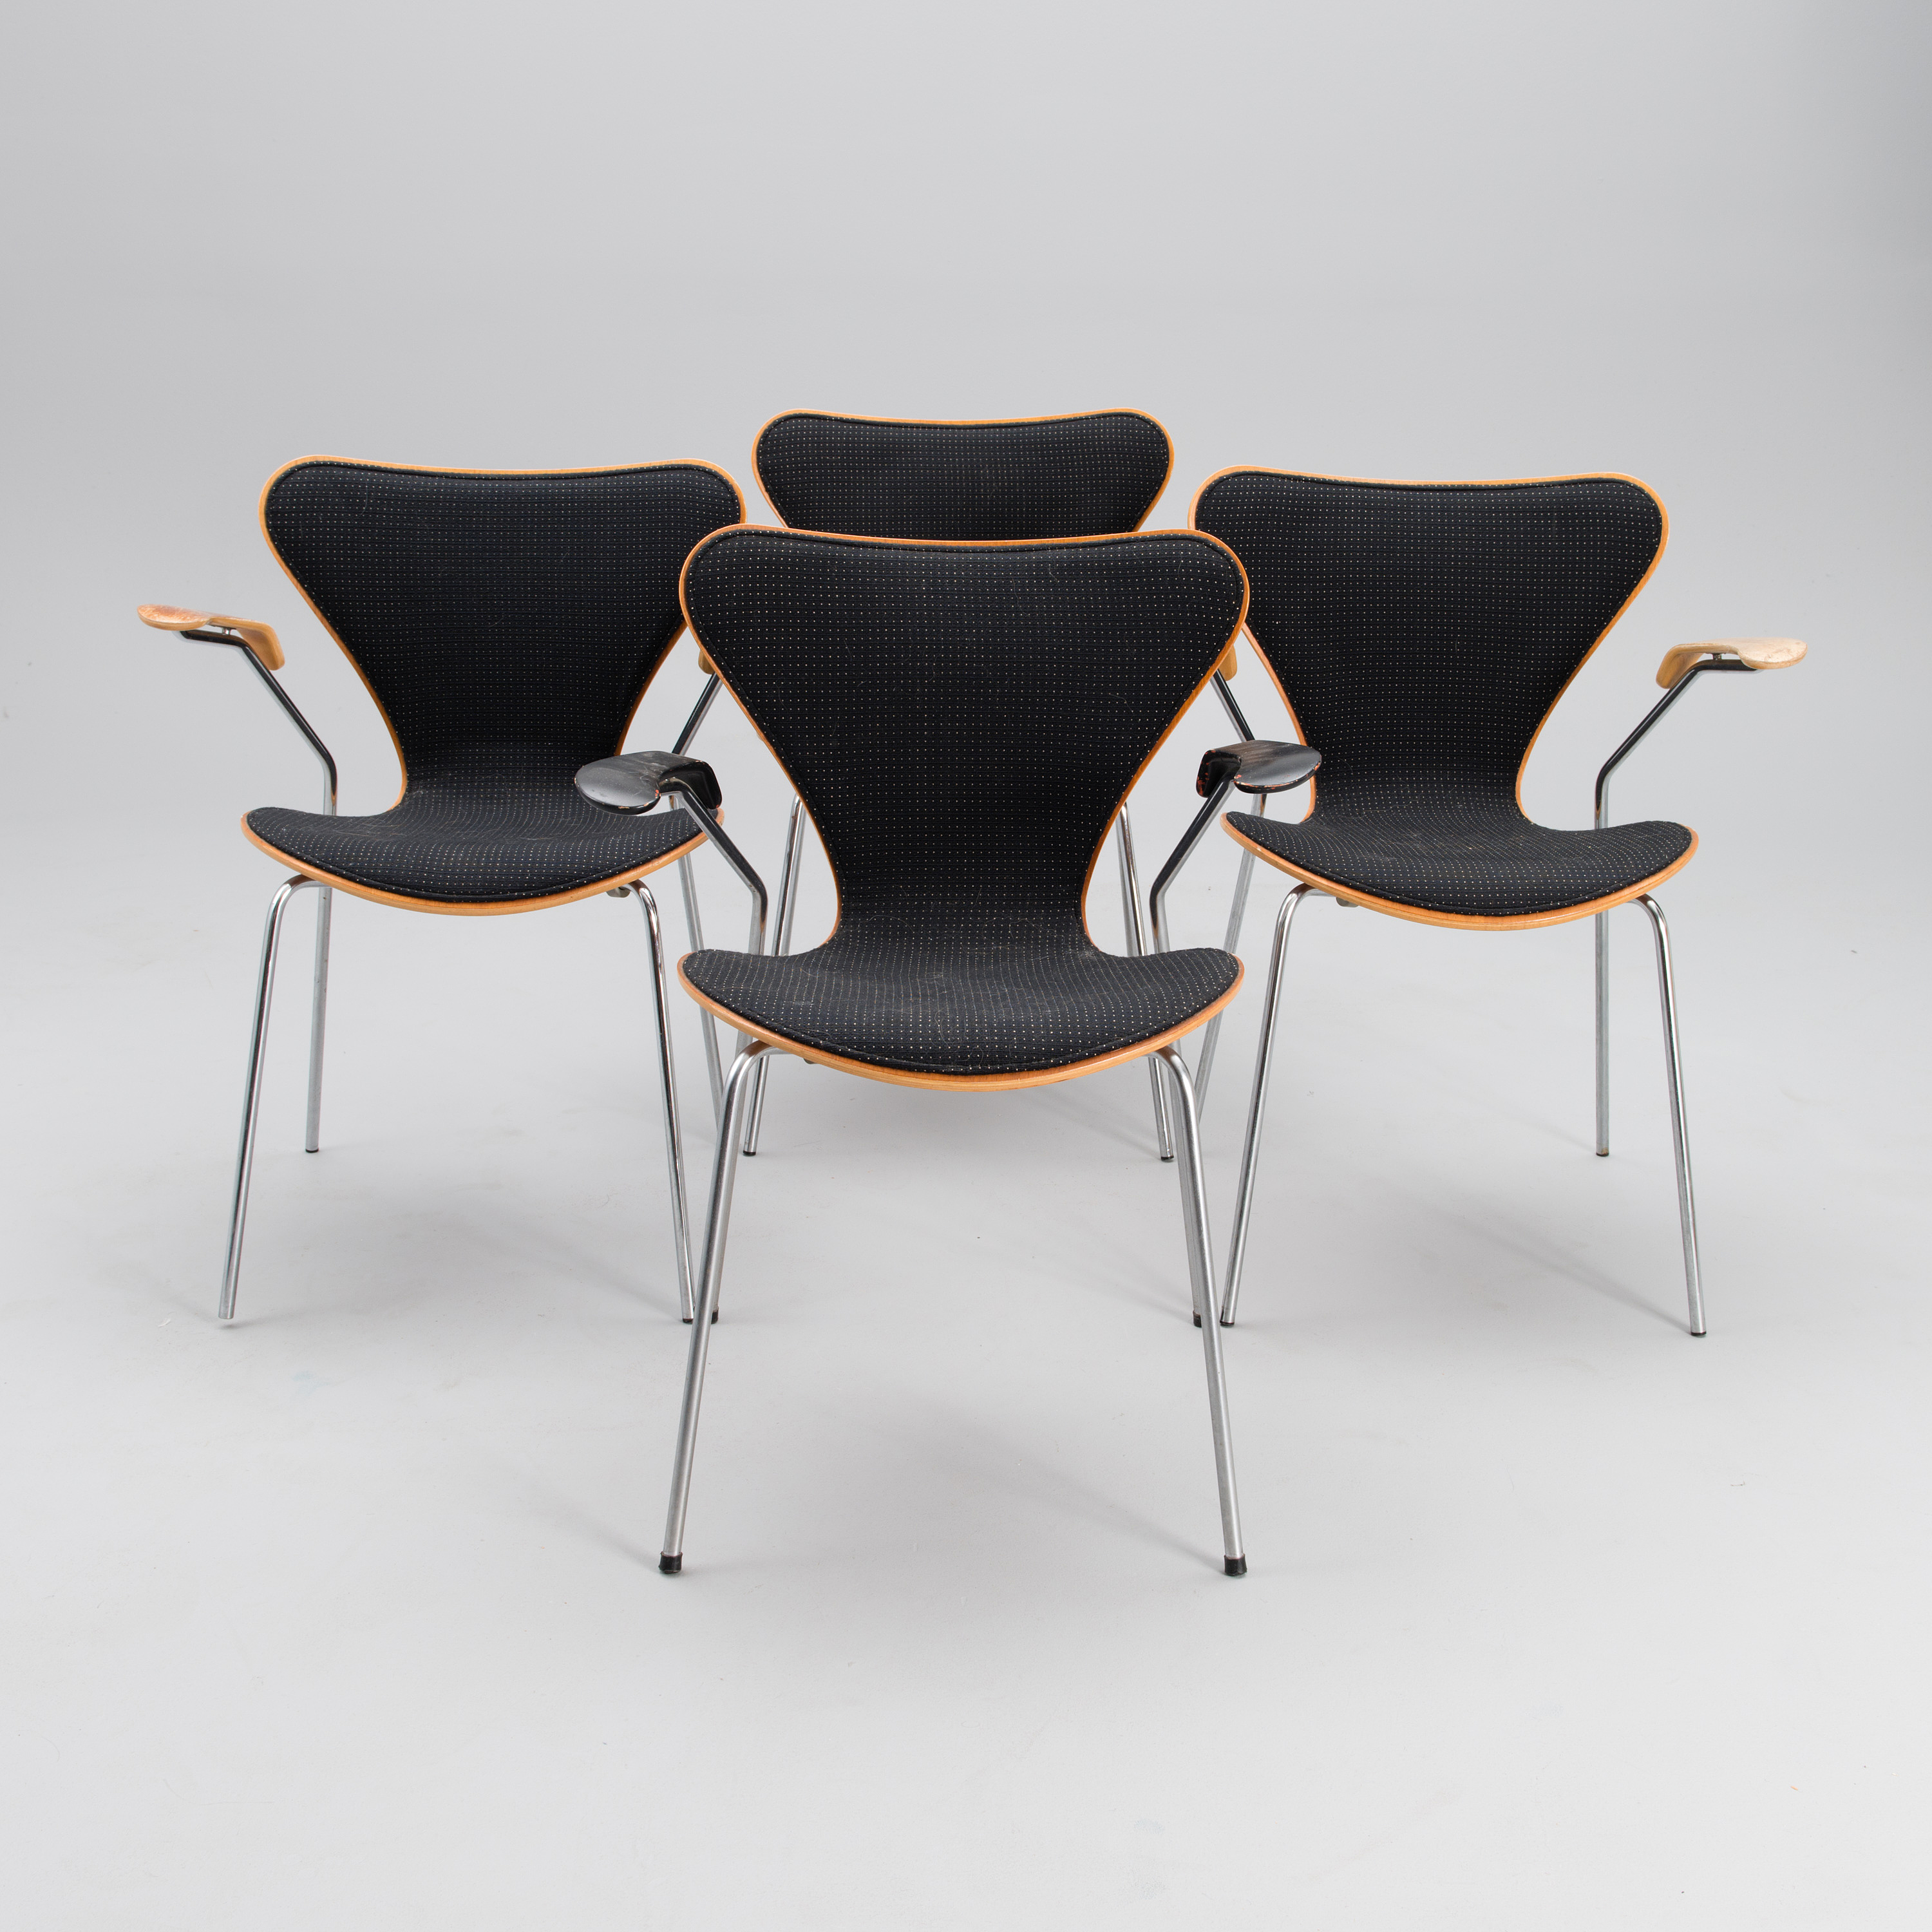 ARNE JACOBSEN A set of four 1990 1991 Series 7 chairs for Fritz